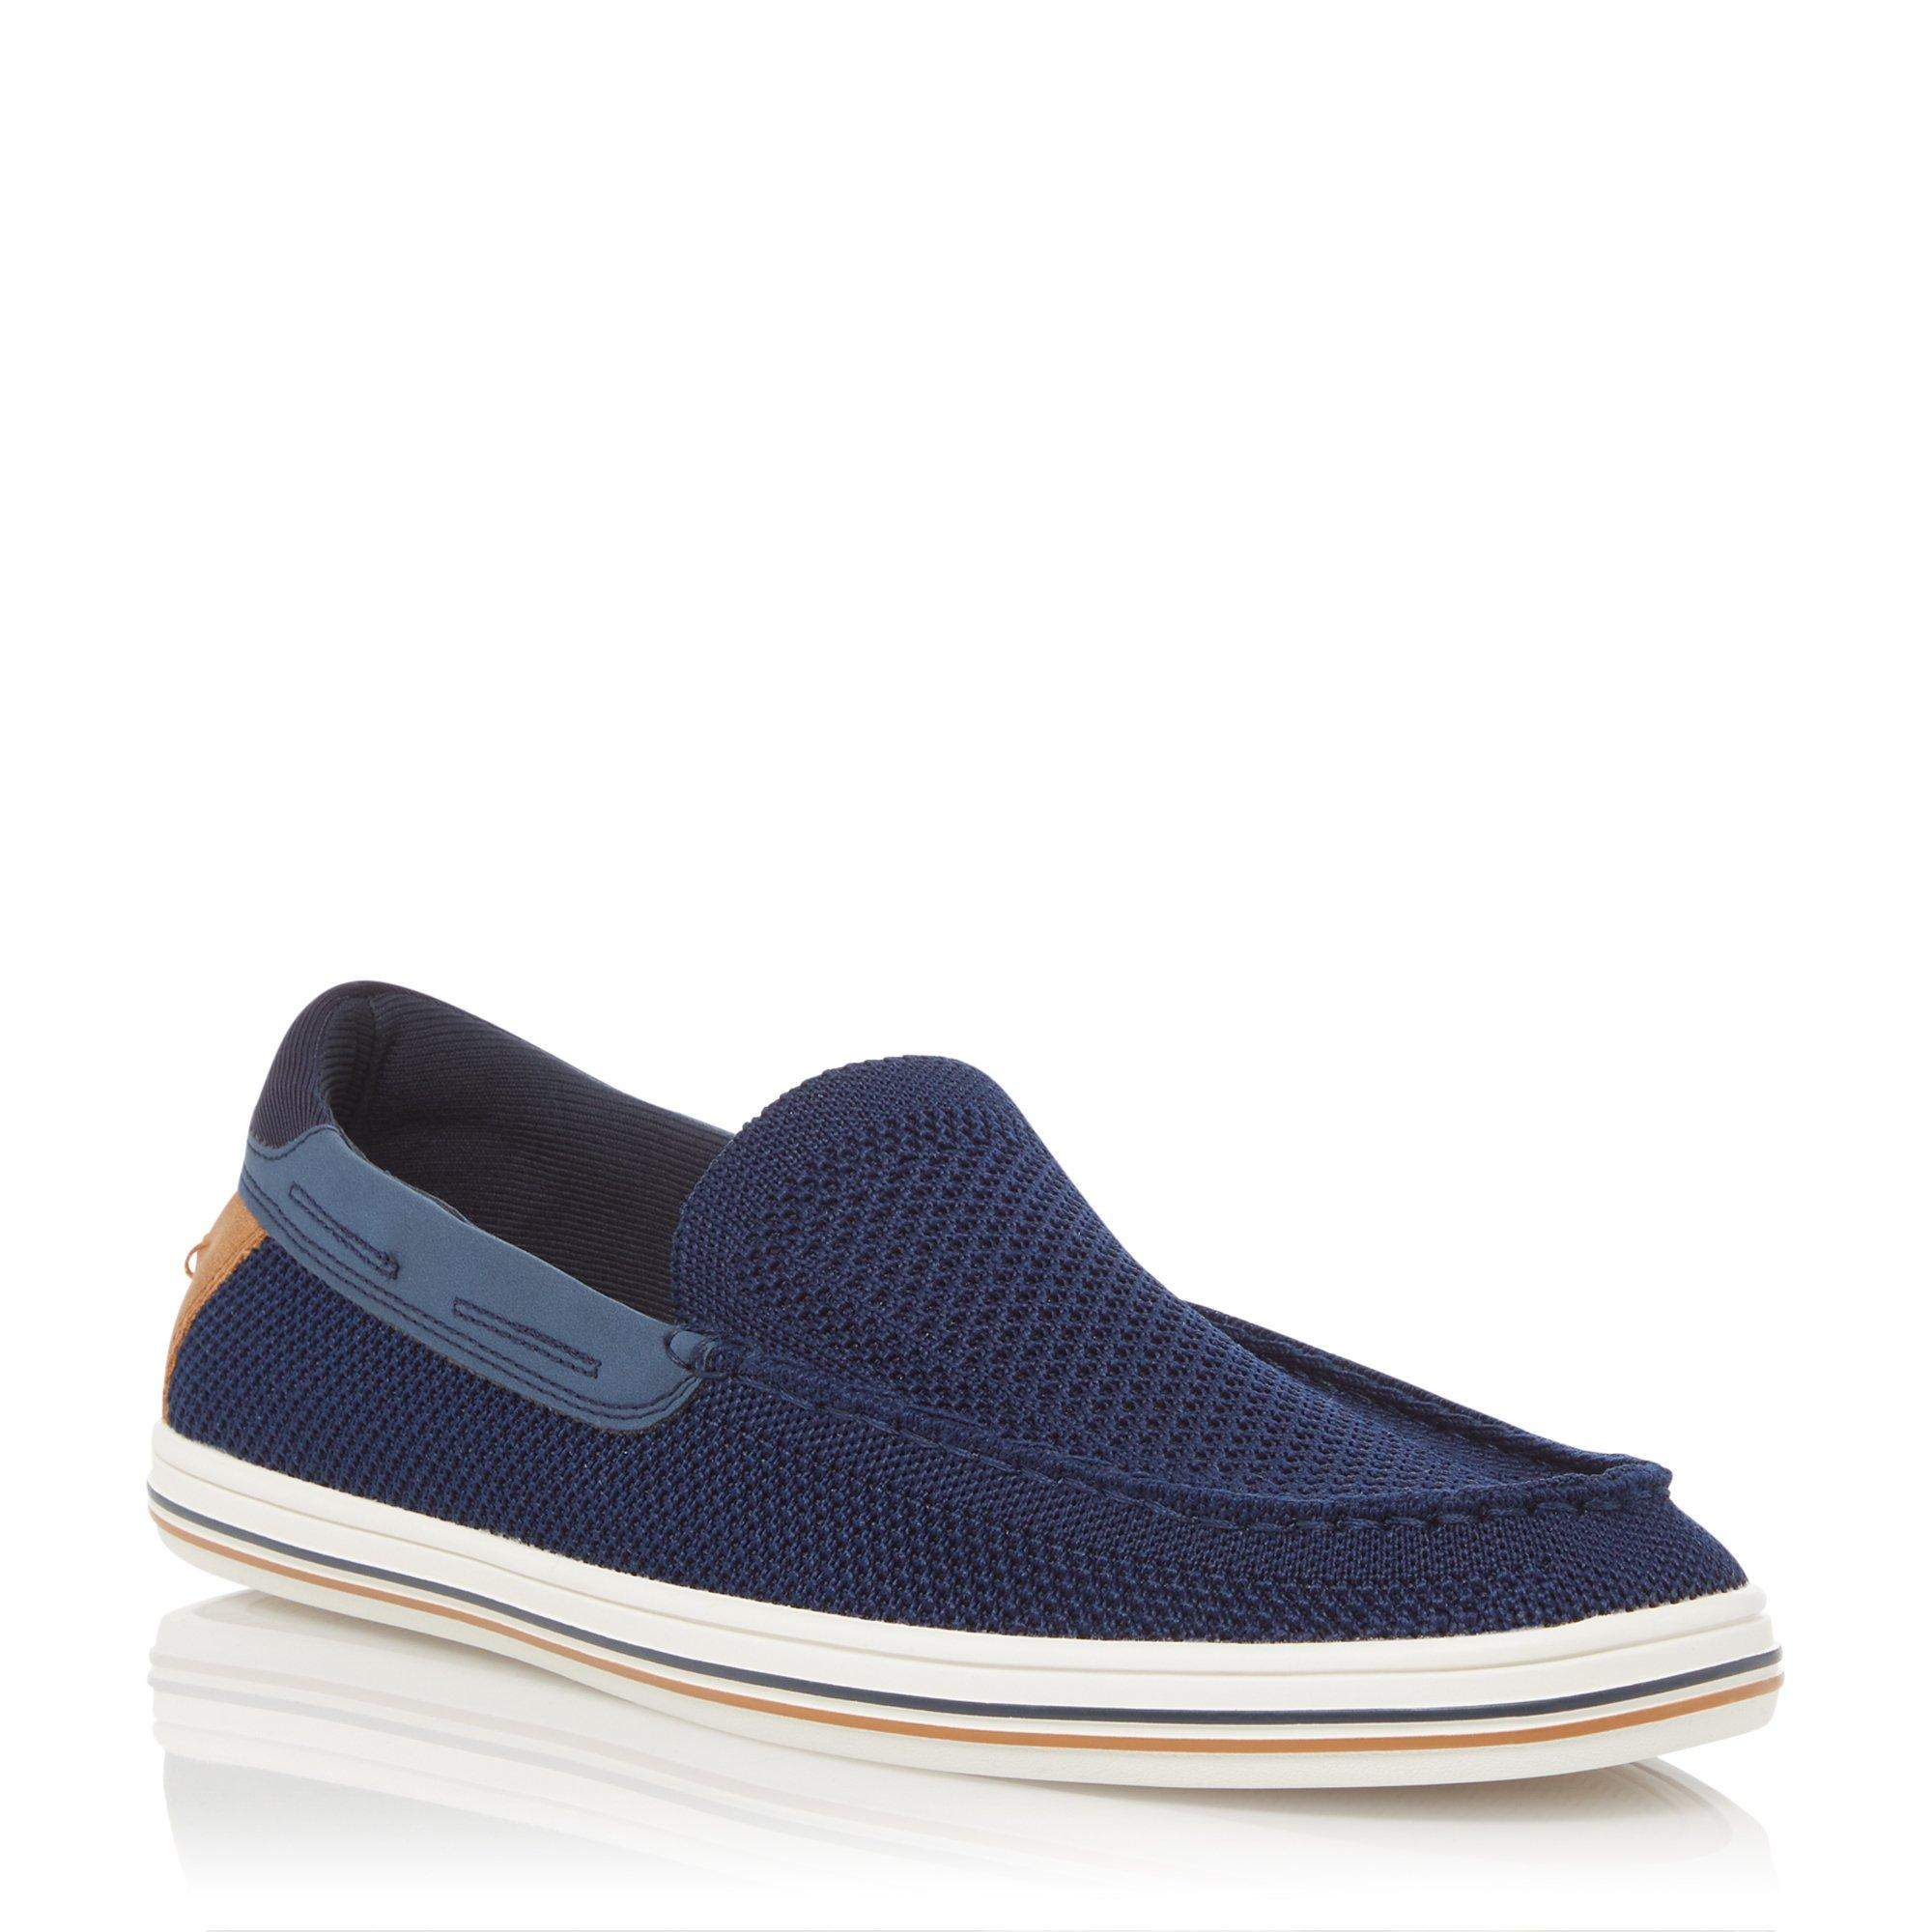 BLUFF - Knit Slip Loafer